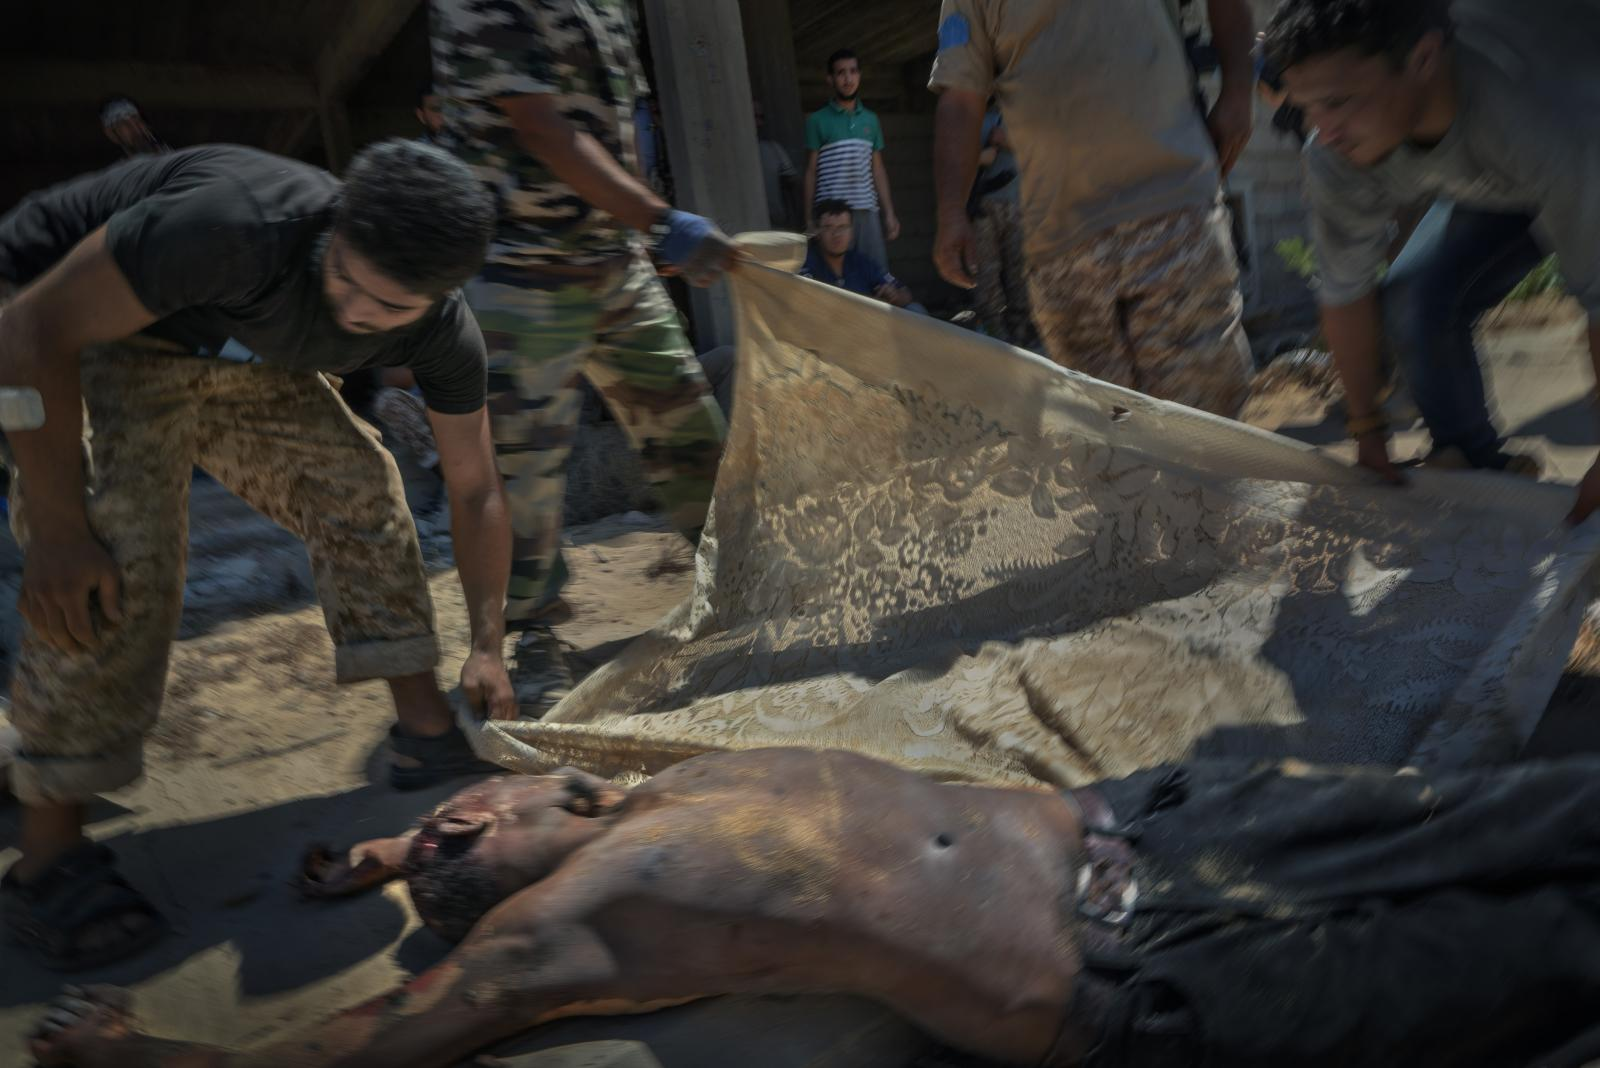 Fighters of the Government of National Accord (GNA), an interim government endorsed by the United Nations, cover the corpse of an ISIS militant in District 2. A large number of sub-Saharan Africans were among the ranks of ISIS in Sirte. Many of them neither understood Arabic nor, as a result, could read the Koran (Libya, 2016)